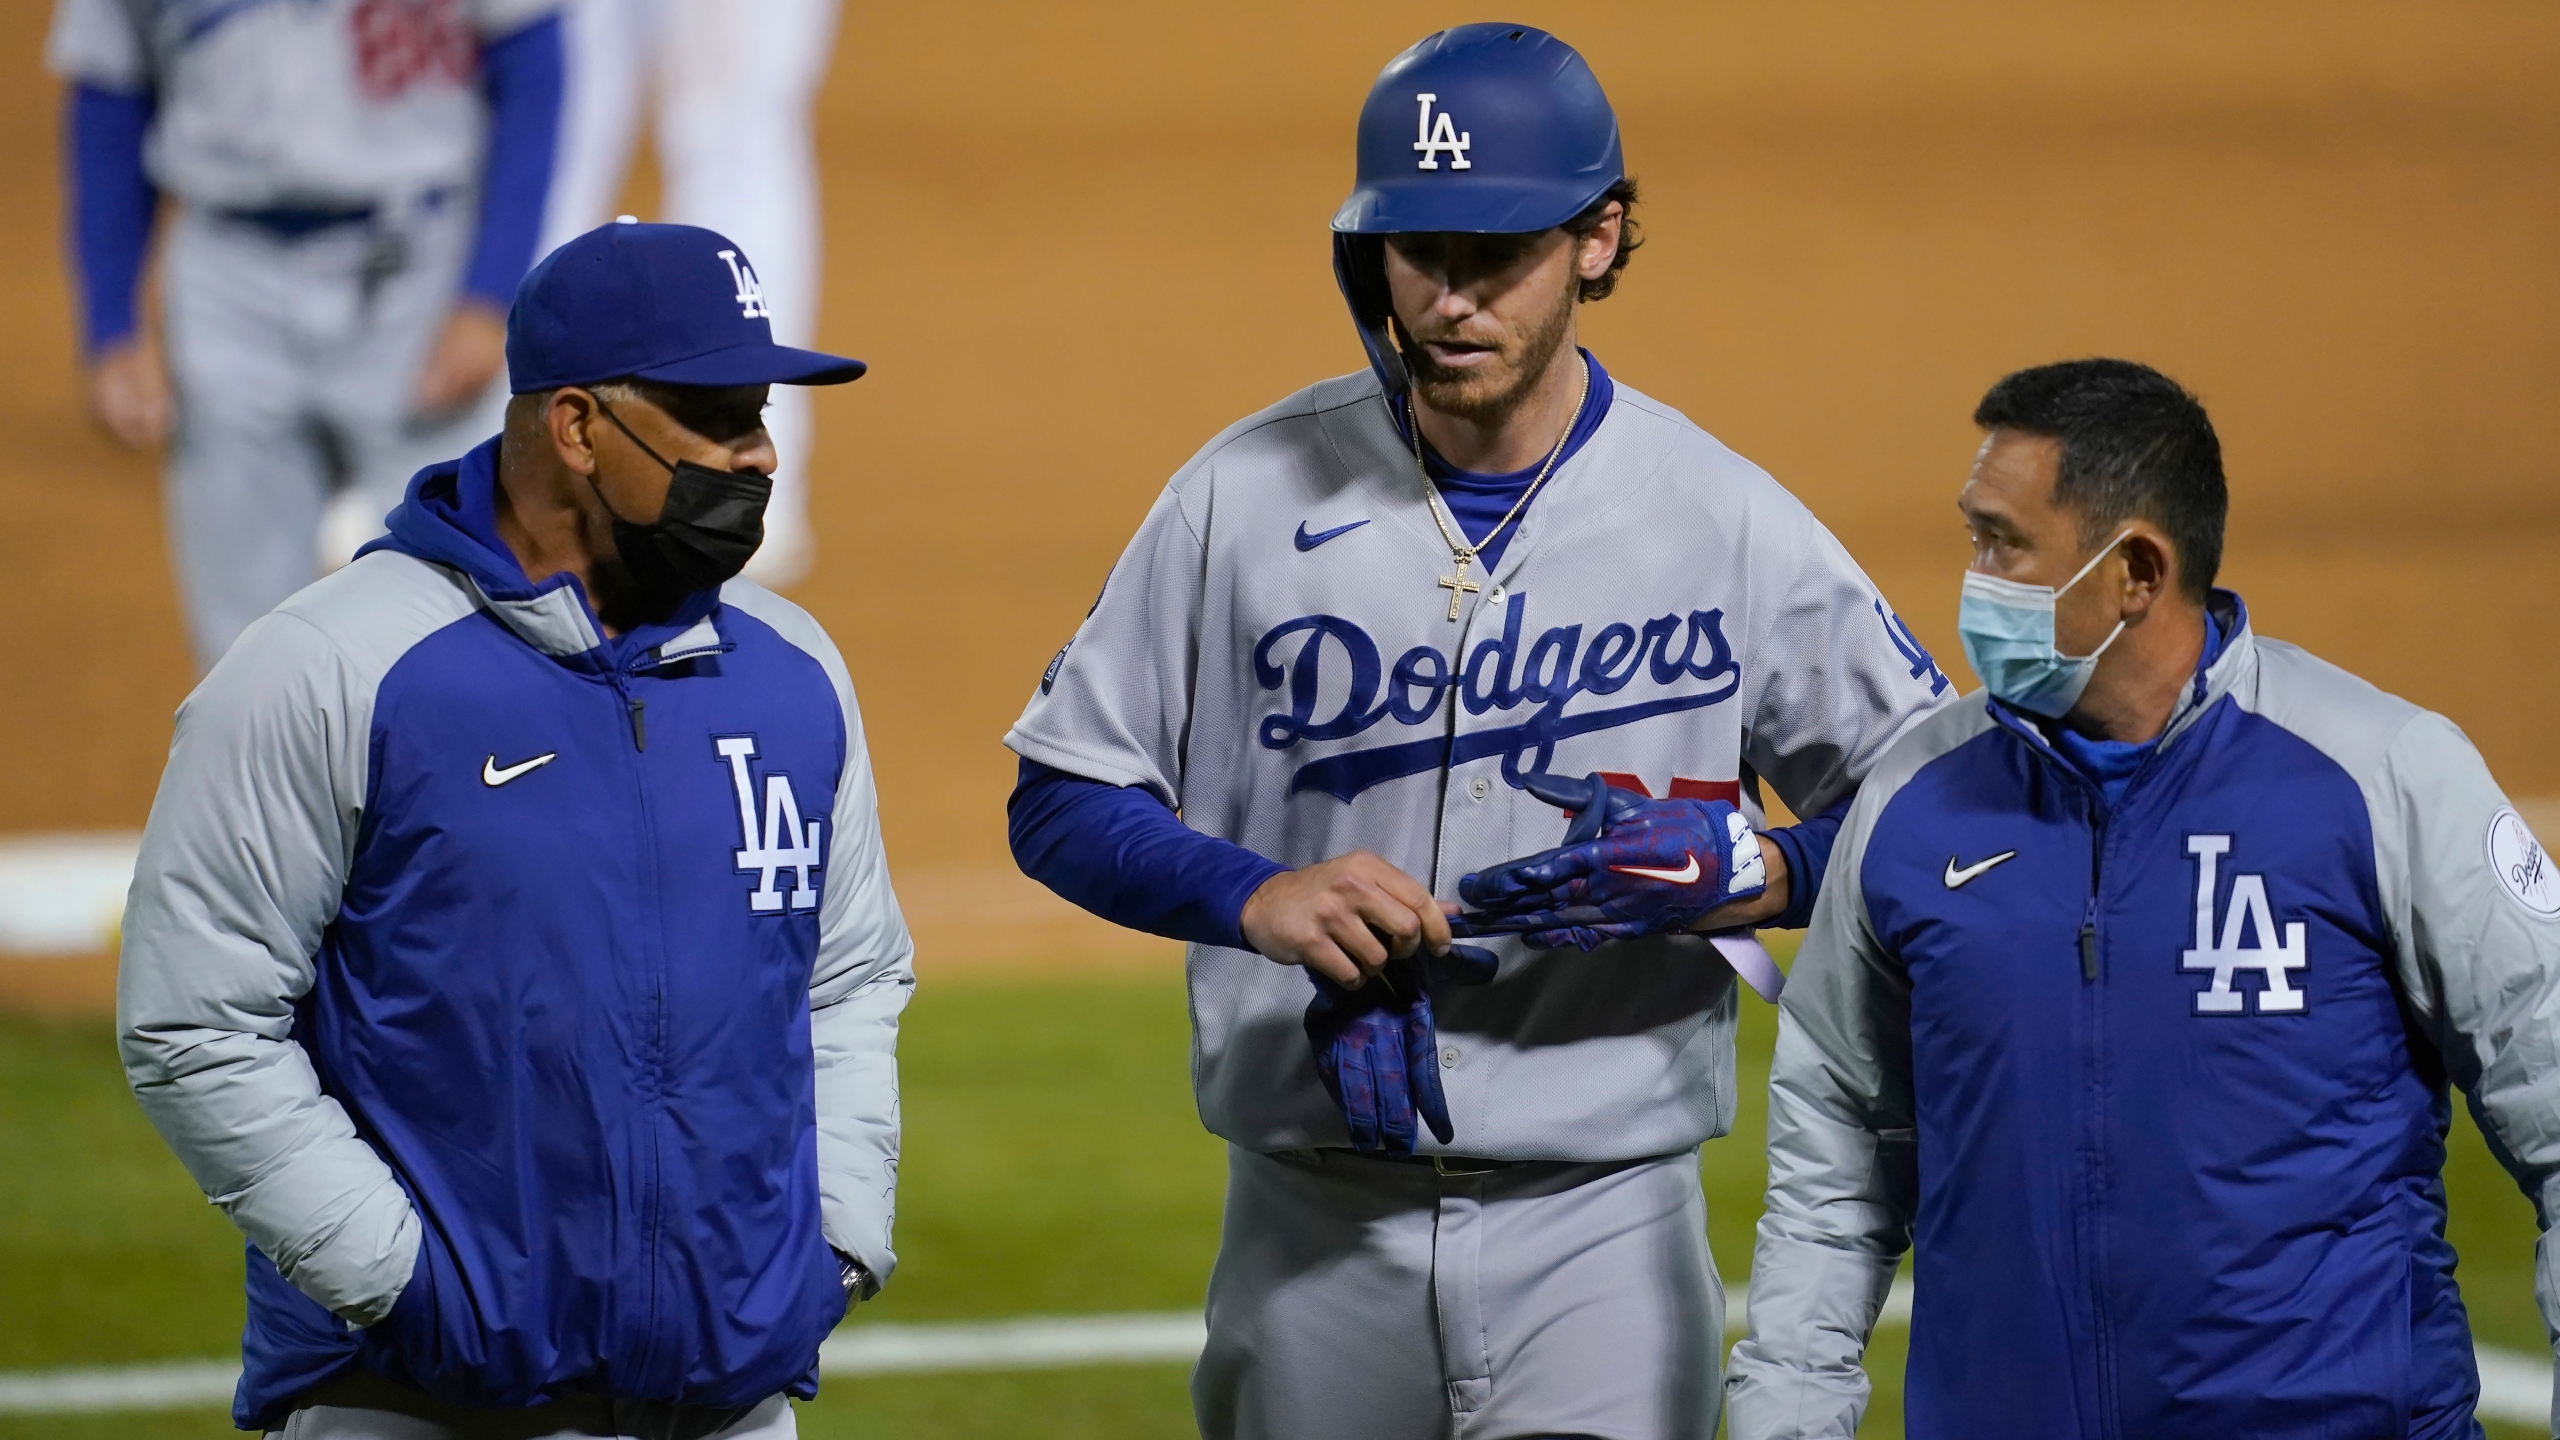 Los Angeles Dodgers' Cody Bellinger, center, walks off the field as he leaves the game with manager Dave Roberts, left, and a trainer during the ninth inning of a baseball game against the Oakland Athletics in Oakland on April 5, 2021. (Jeff Chiu / Associated Press)